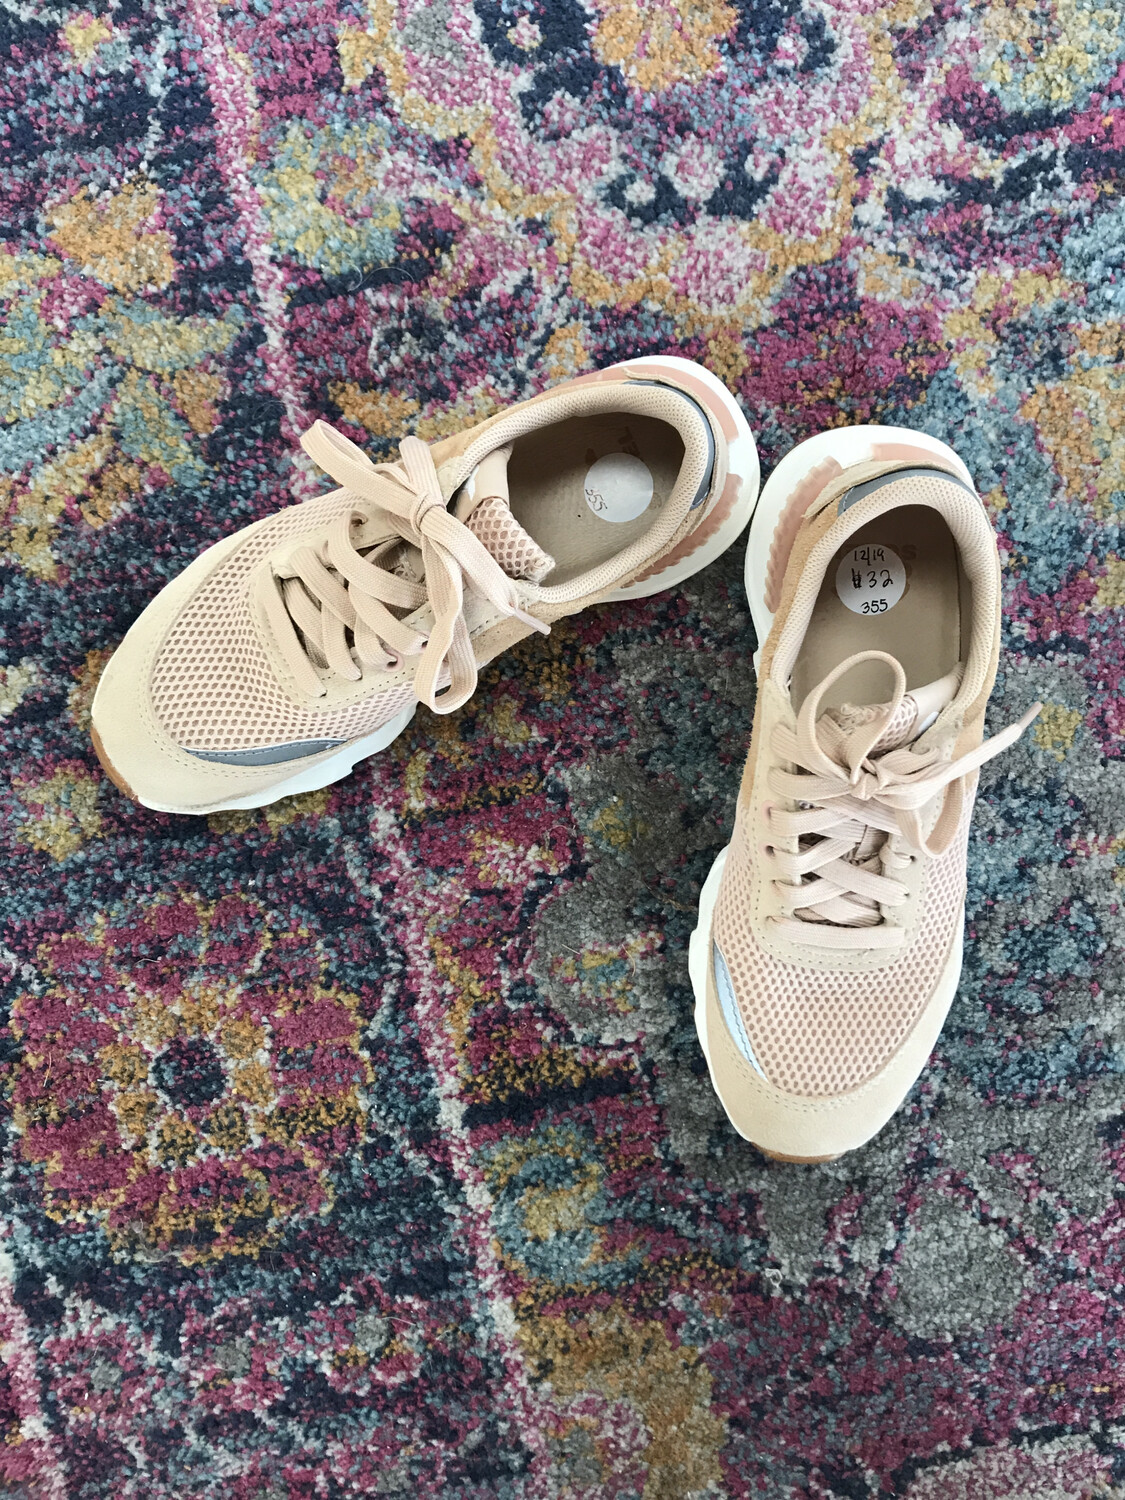 Sorel Blush Pink Tennis Shoes - Size 6